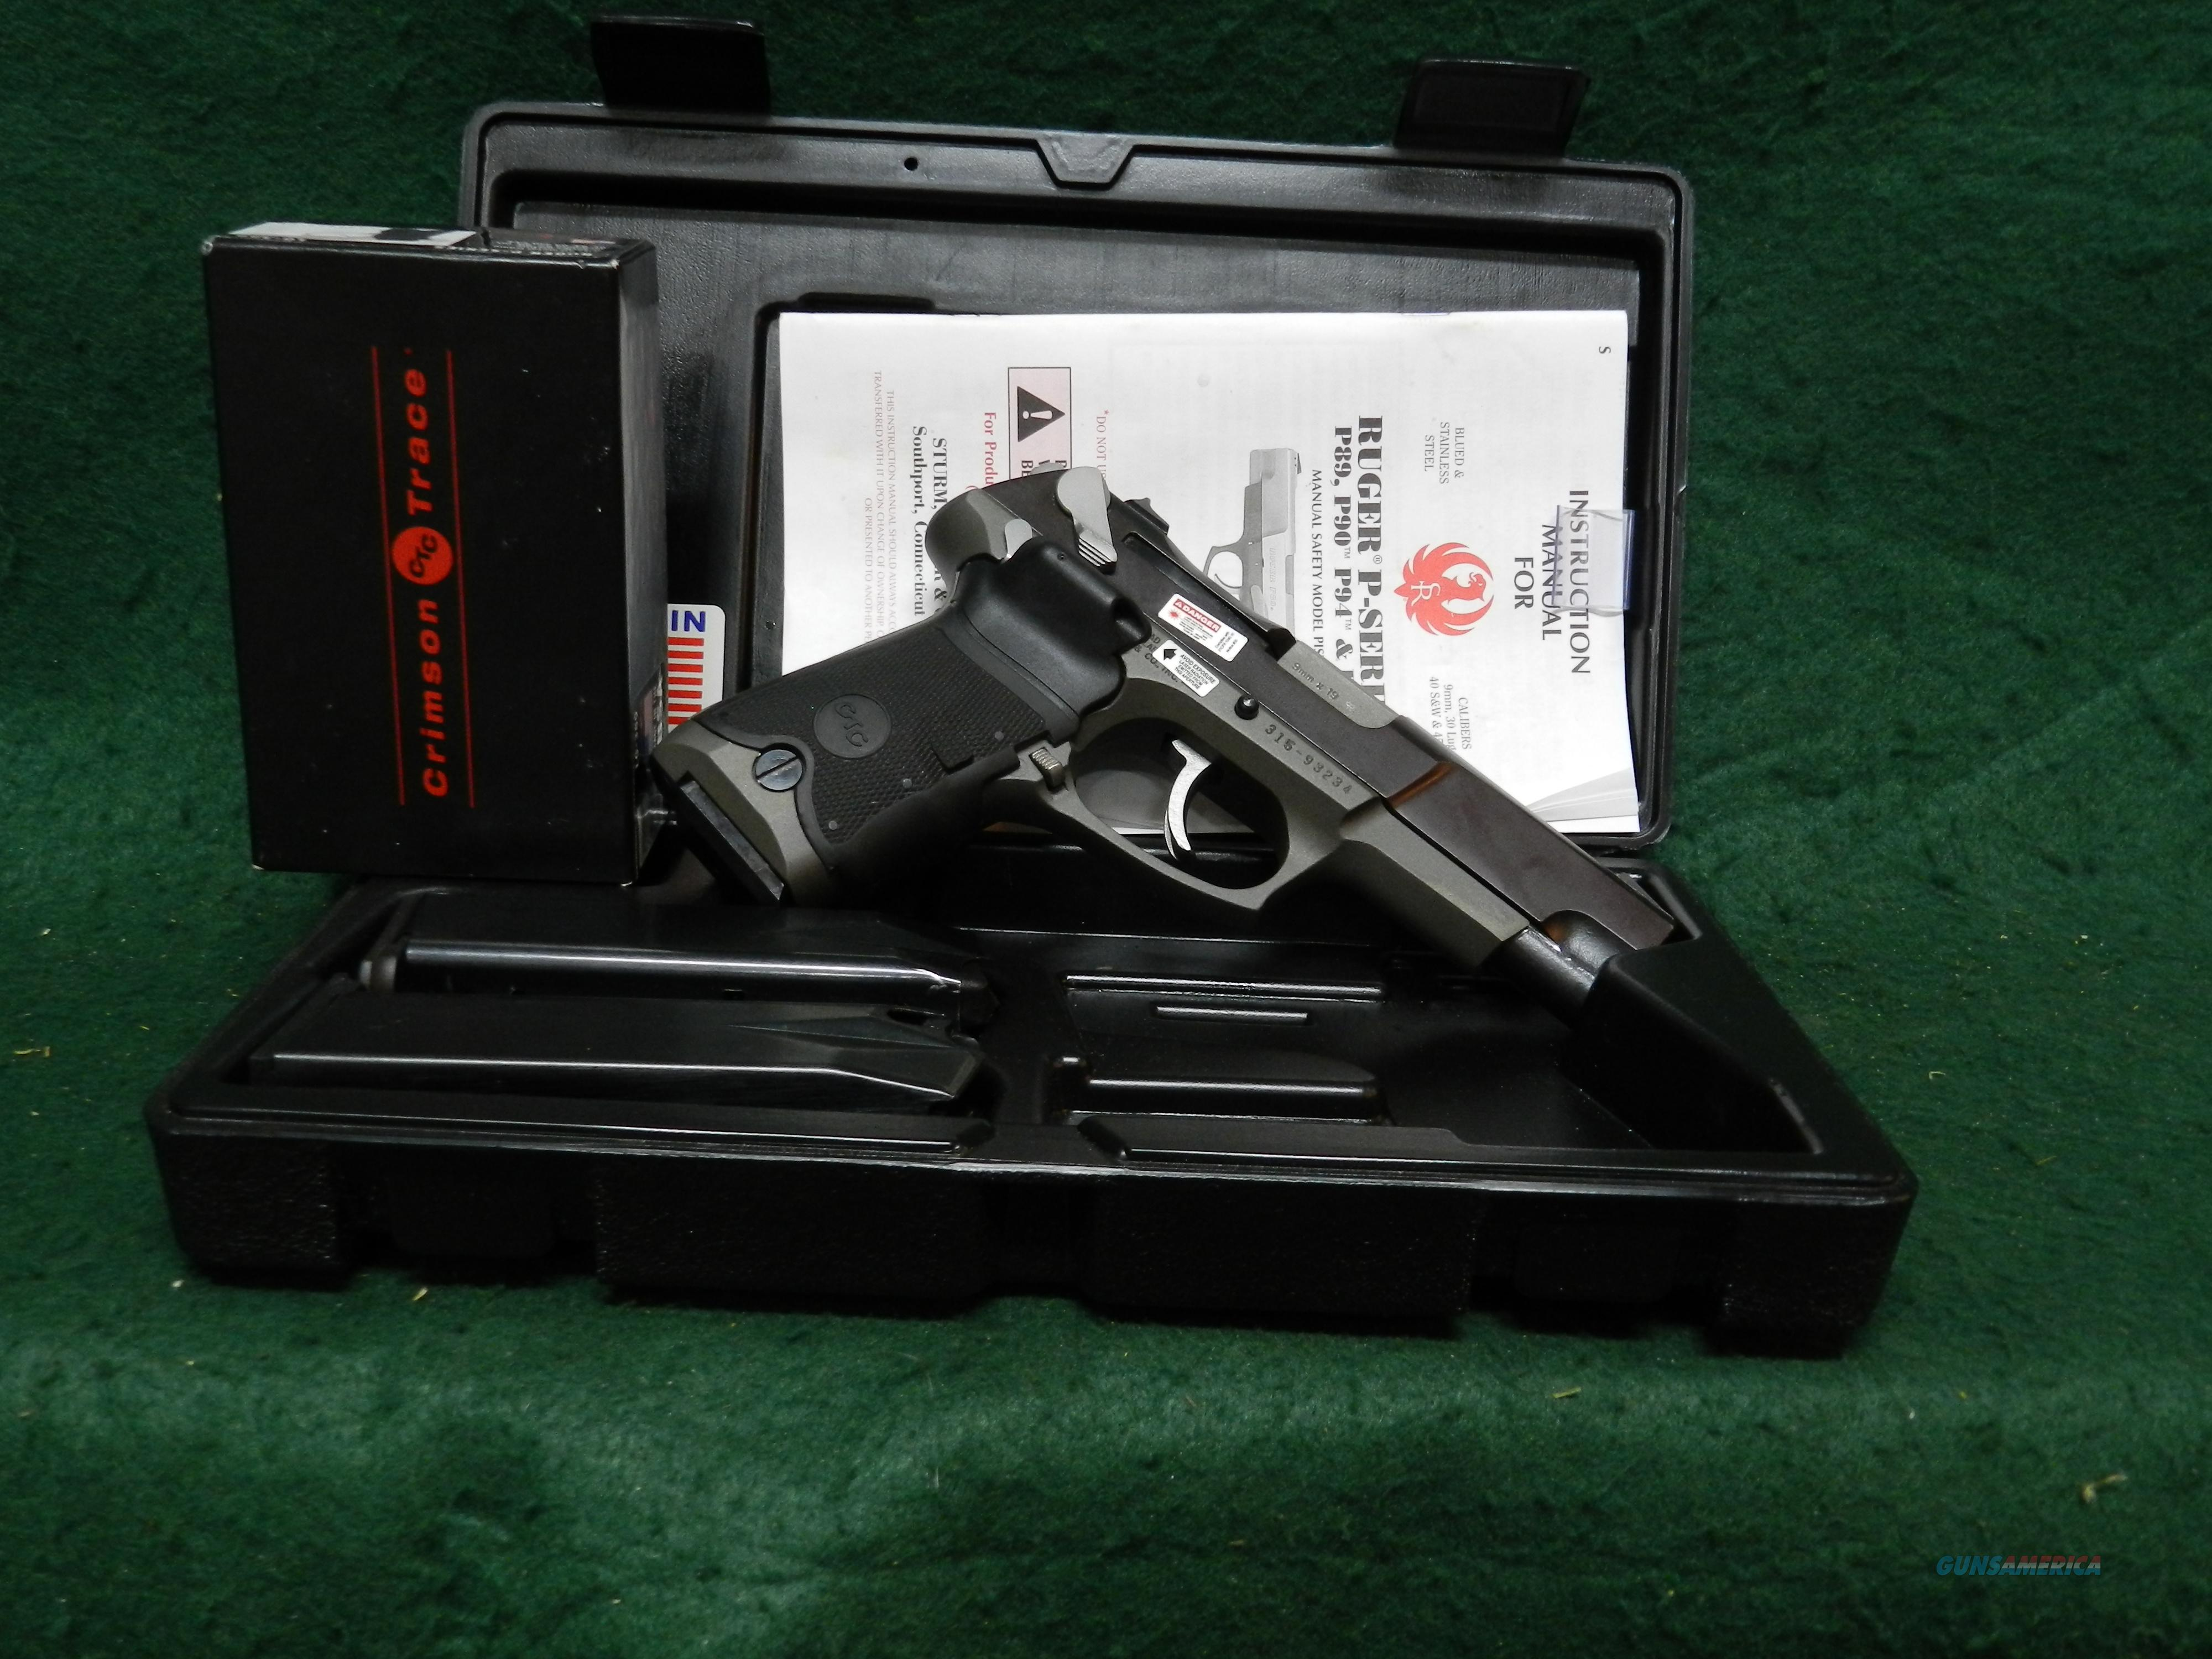 Ruger P89 with Crimson Trace Laser Grips  Guns > Pistols > Ruger Semi-Auto Pistols > P-Series